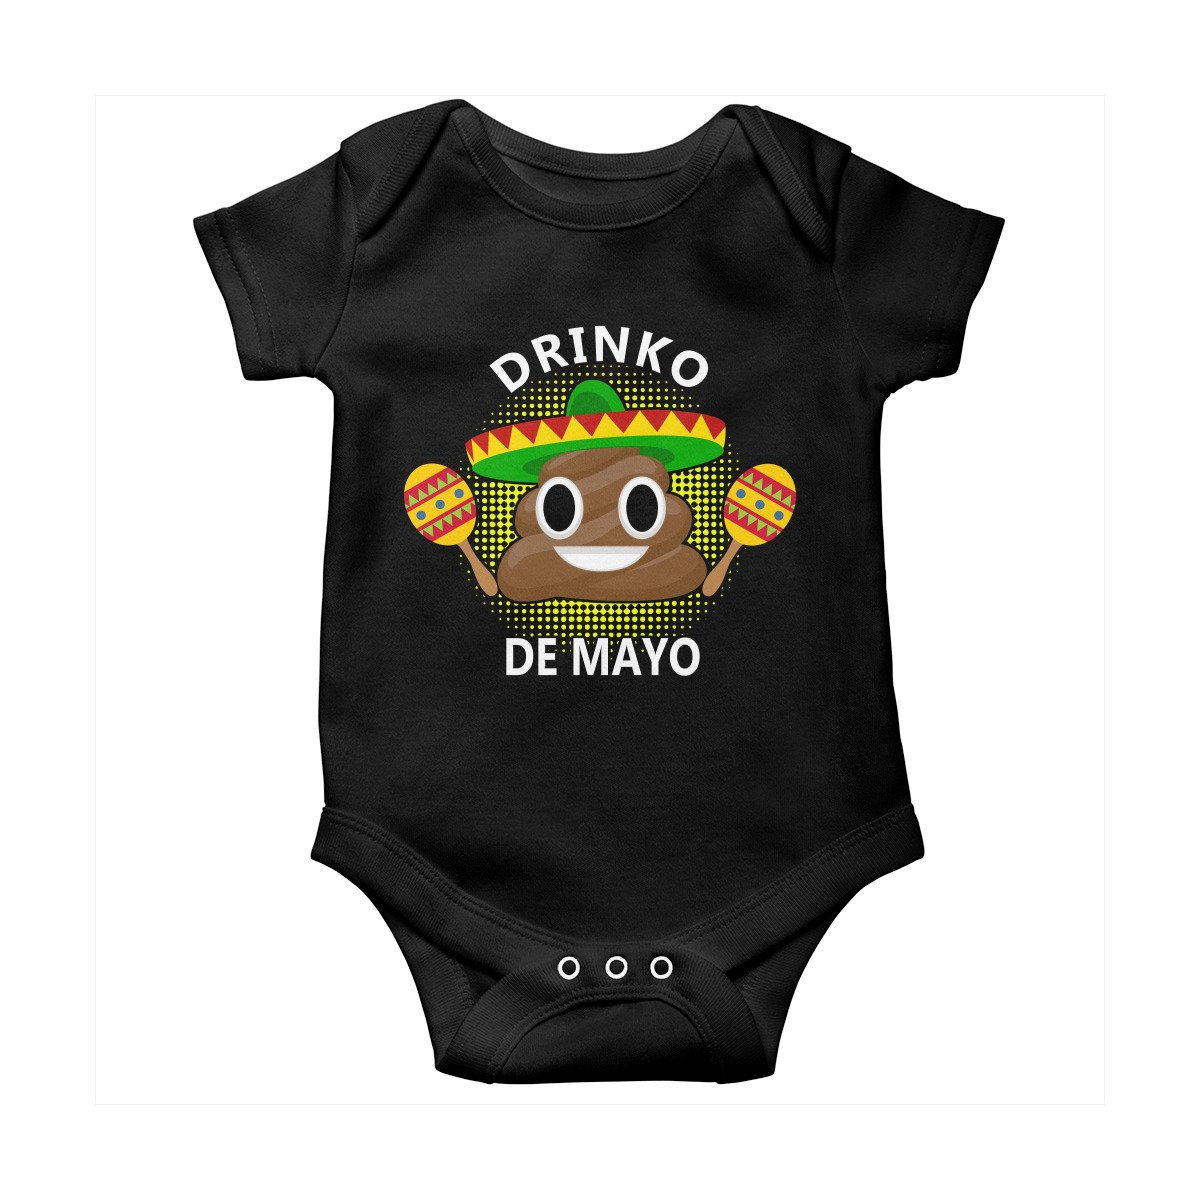 Poogky SHIRT メンズ Medium Baby Onesie Black B07CQSWNCY